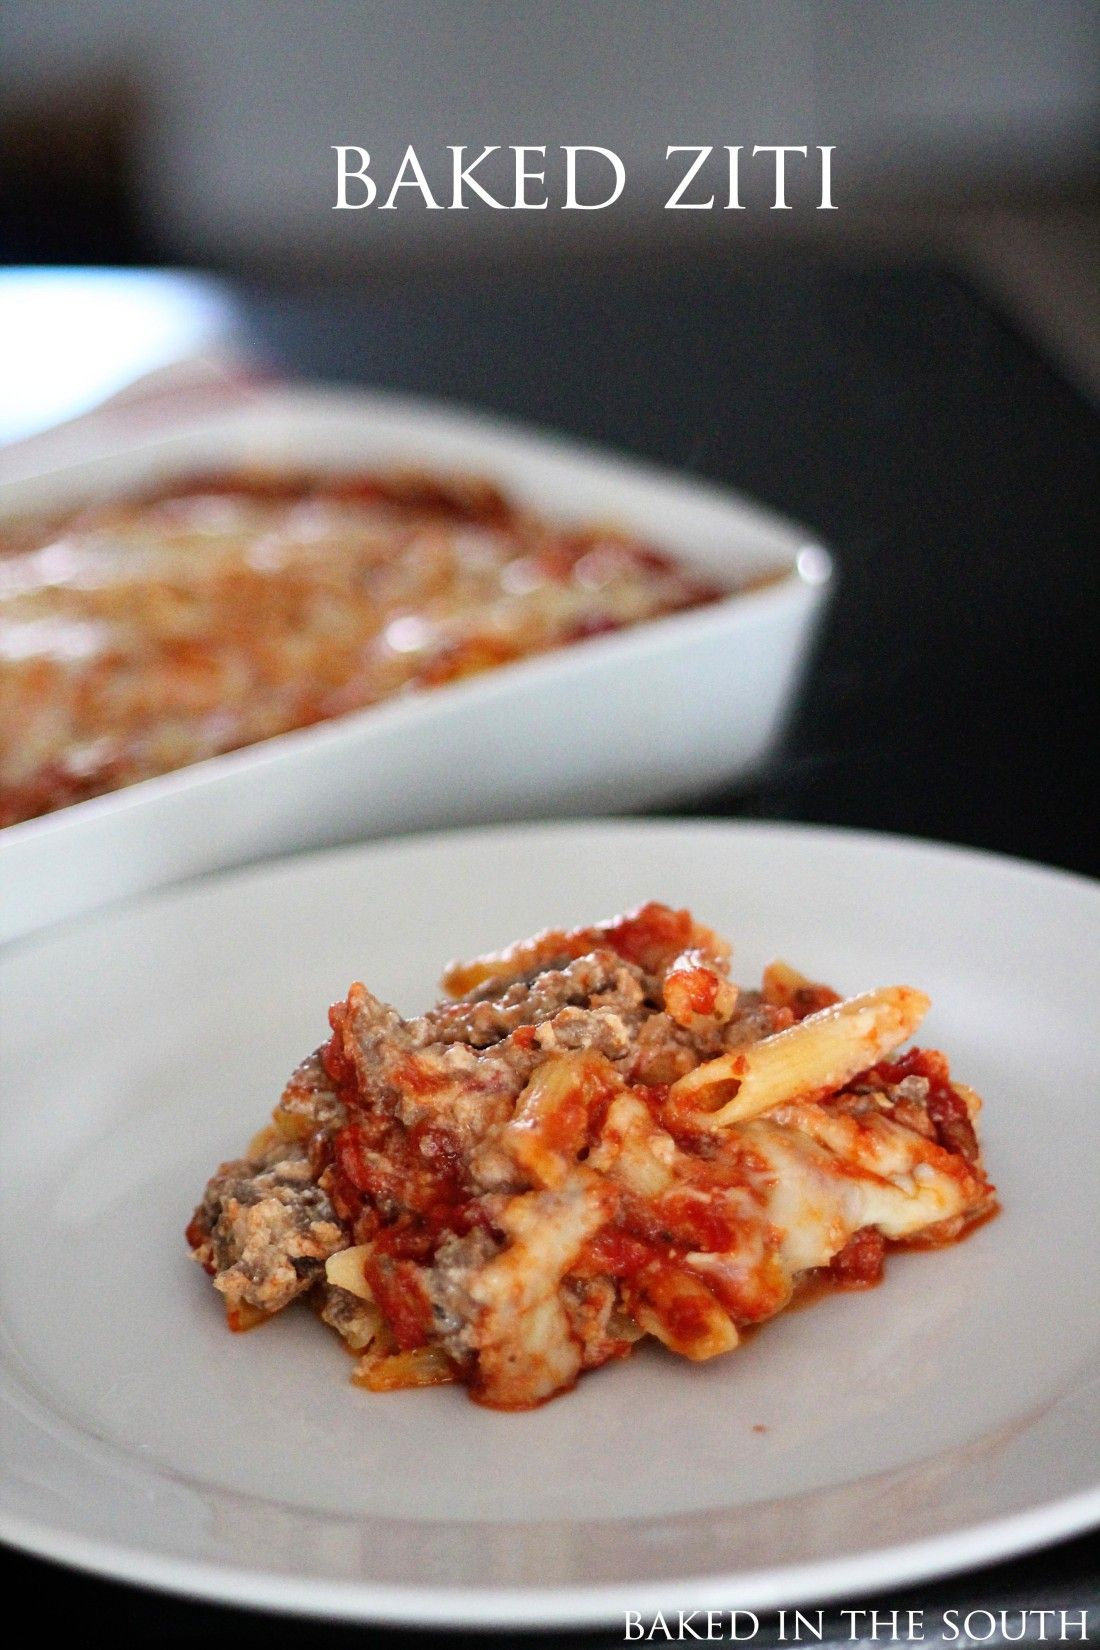 Pioneer Woman S Baked Ziti Baked In The South Recipe Baked Ziti Food Recipes